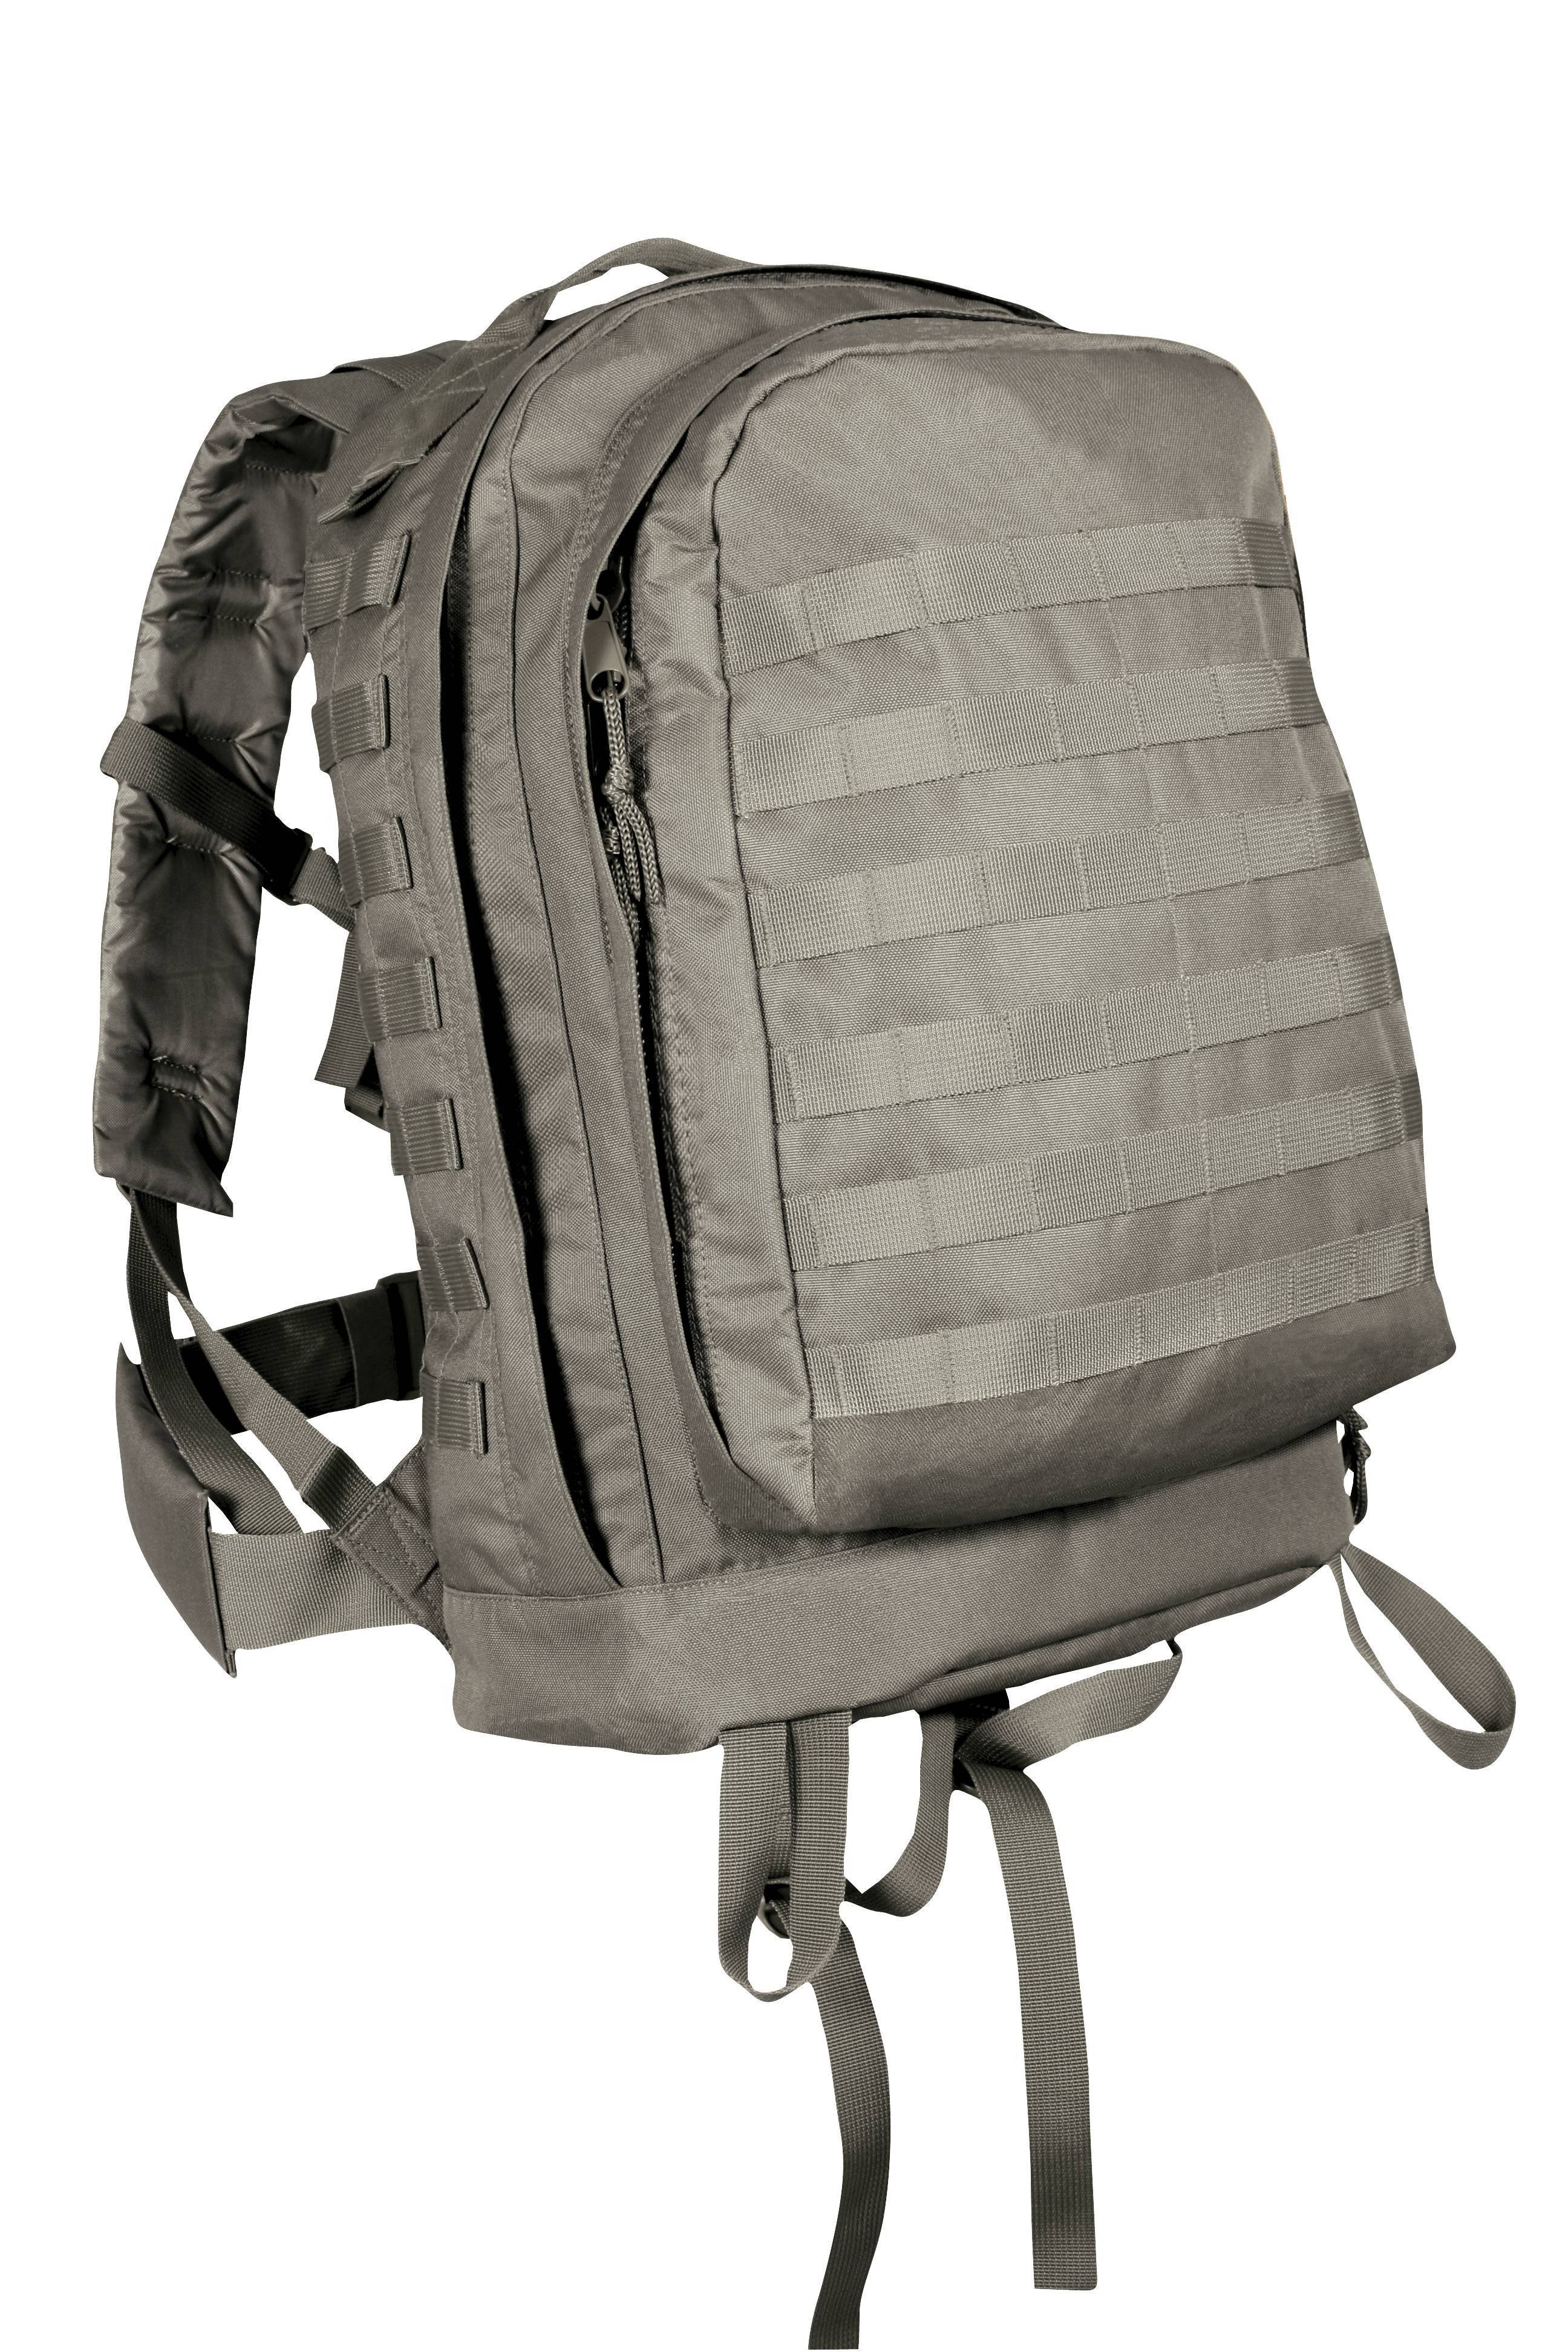 Тактический рюкзак Rothco MOLLE II 3-Day Assault Pack Foliage Green 40159